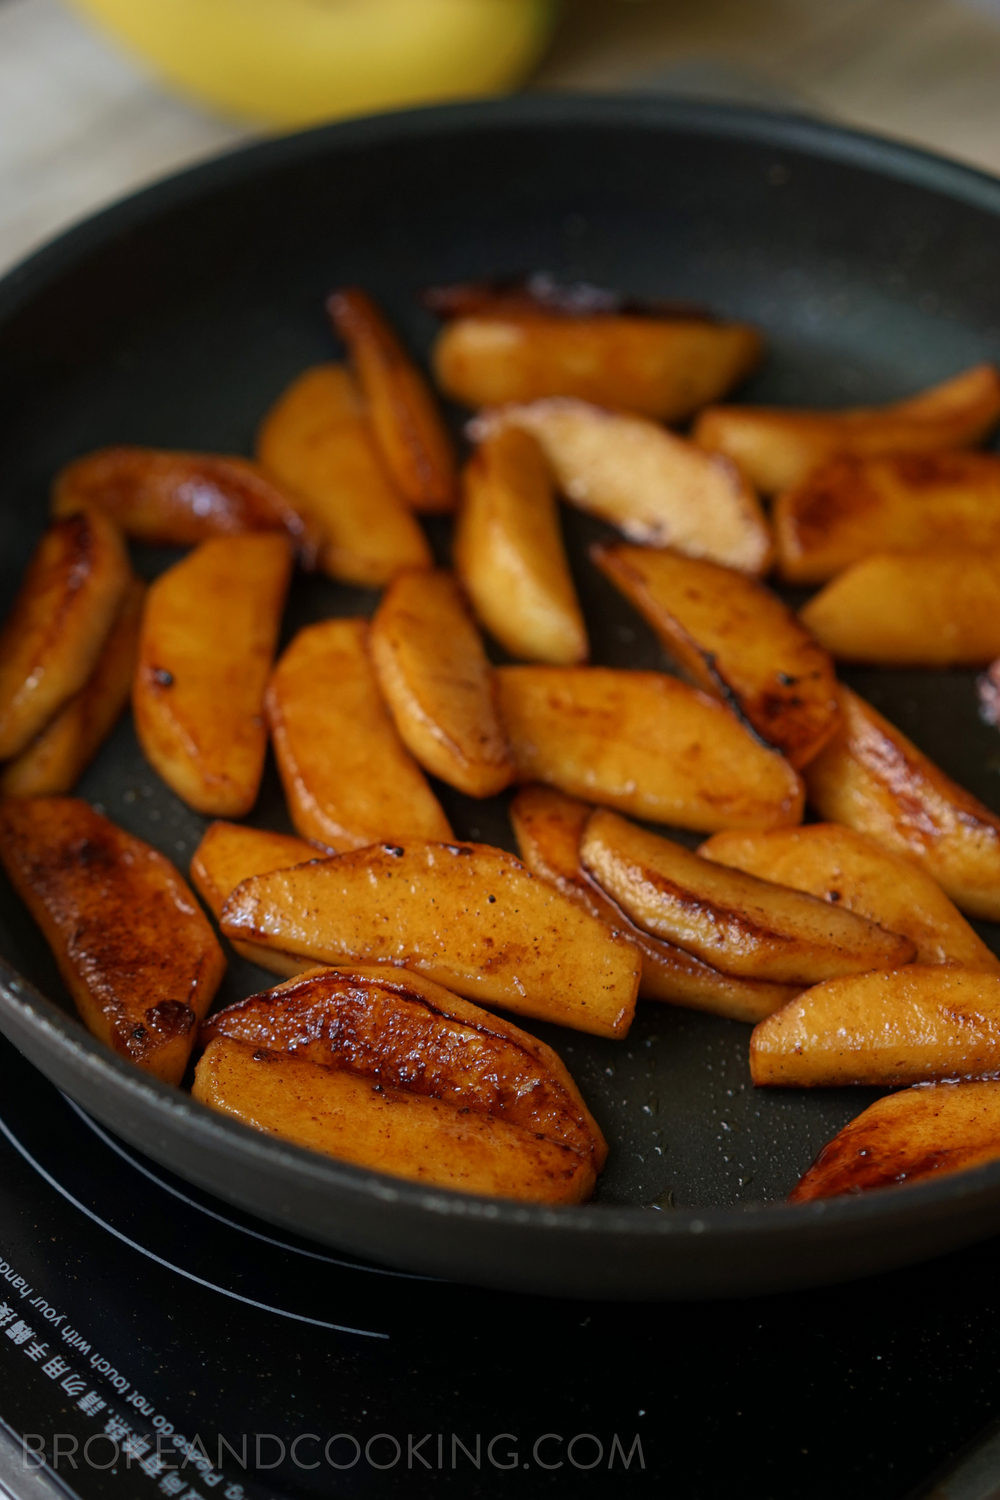 Broke and Cooking Skillet Cinnamon Apples 4